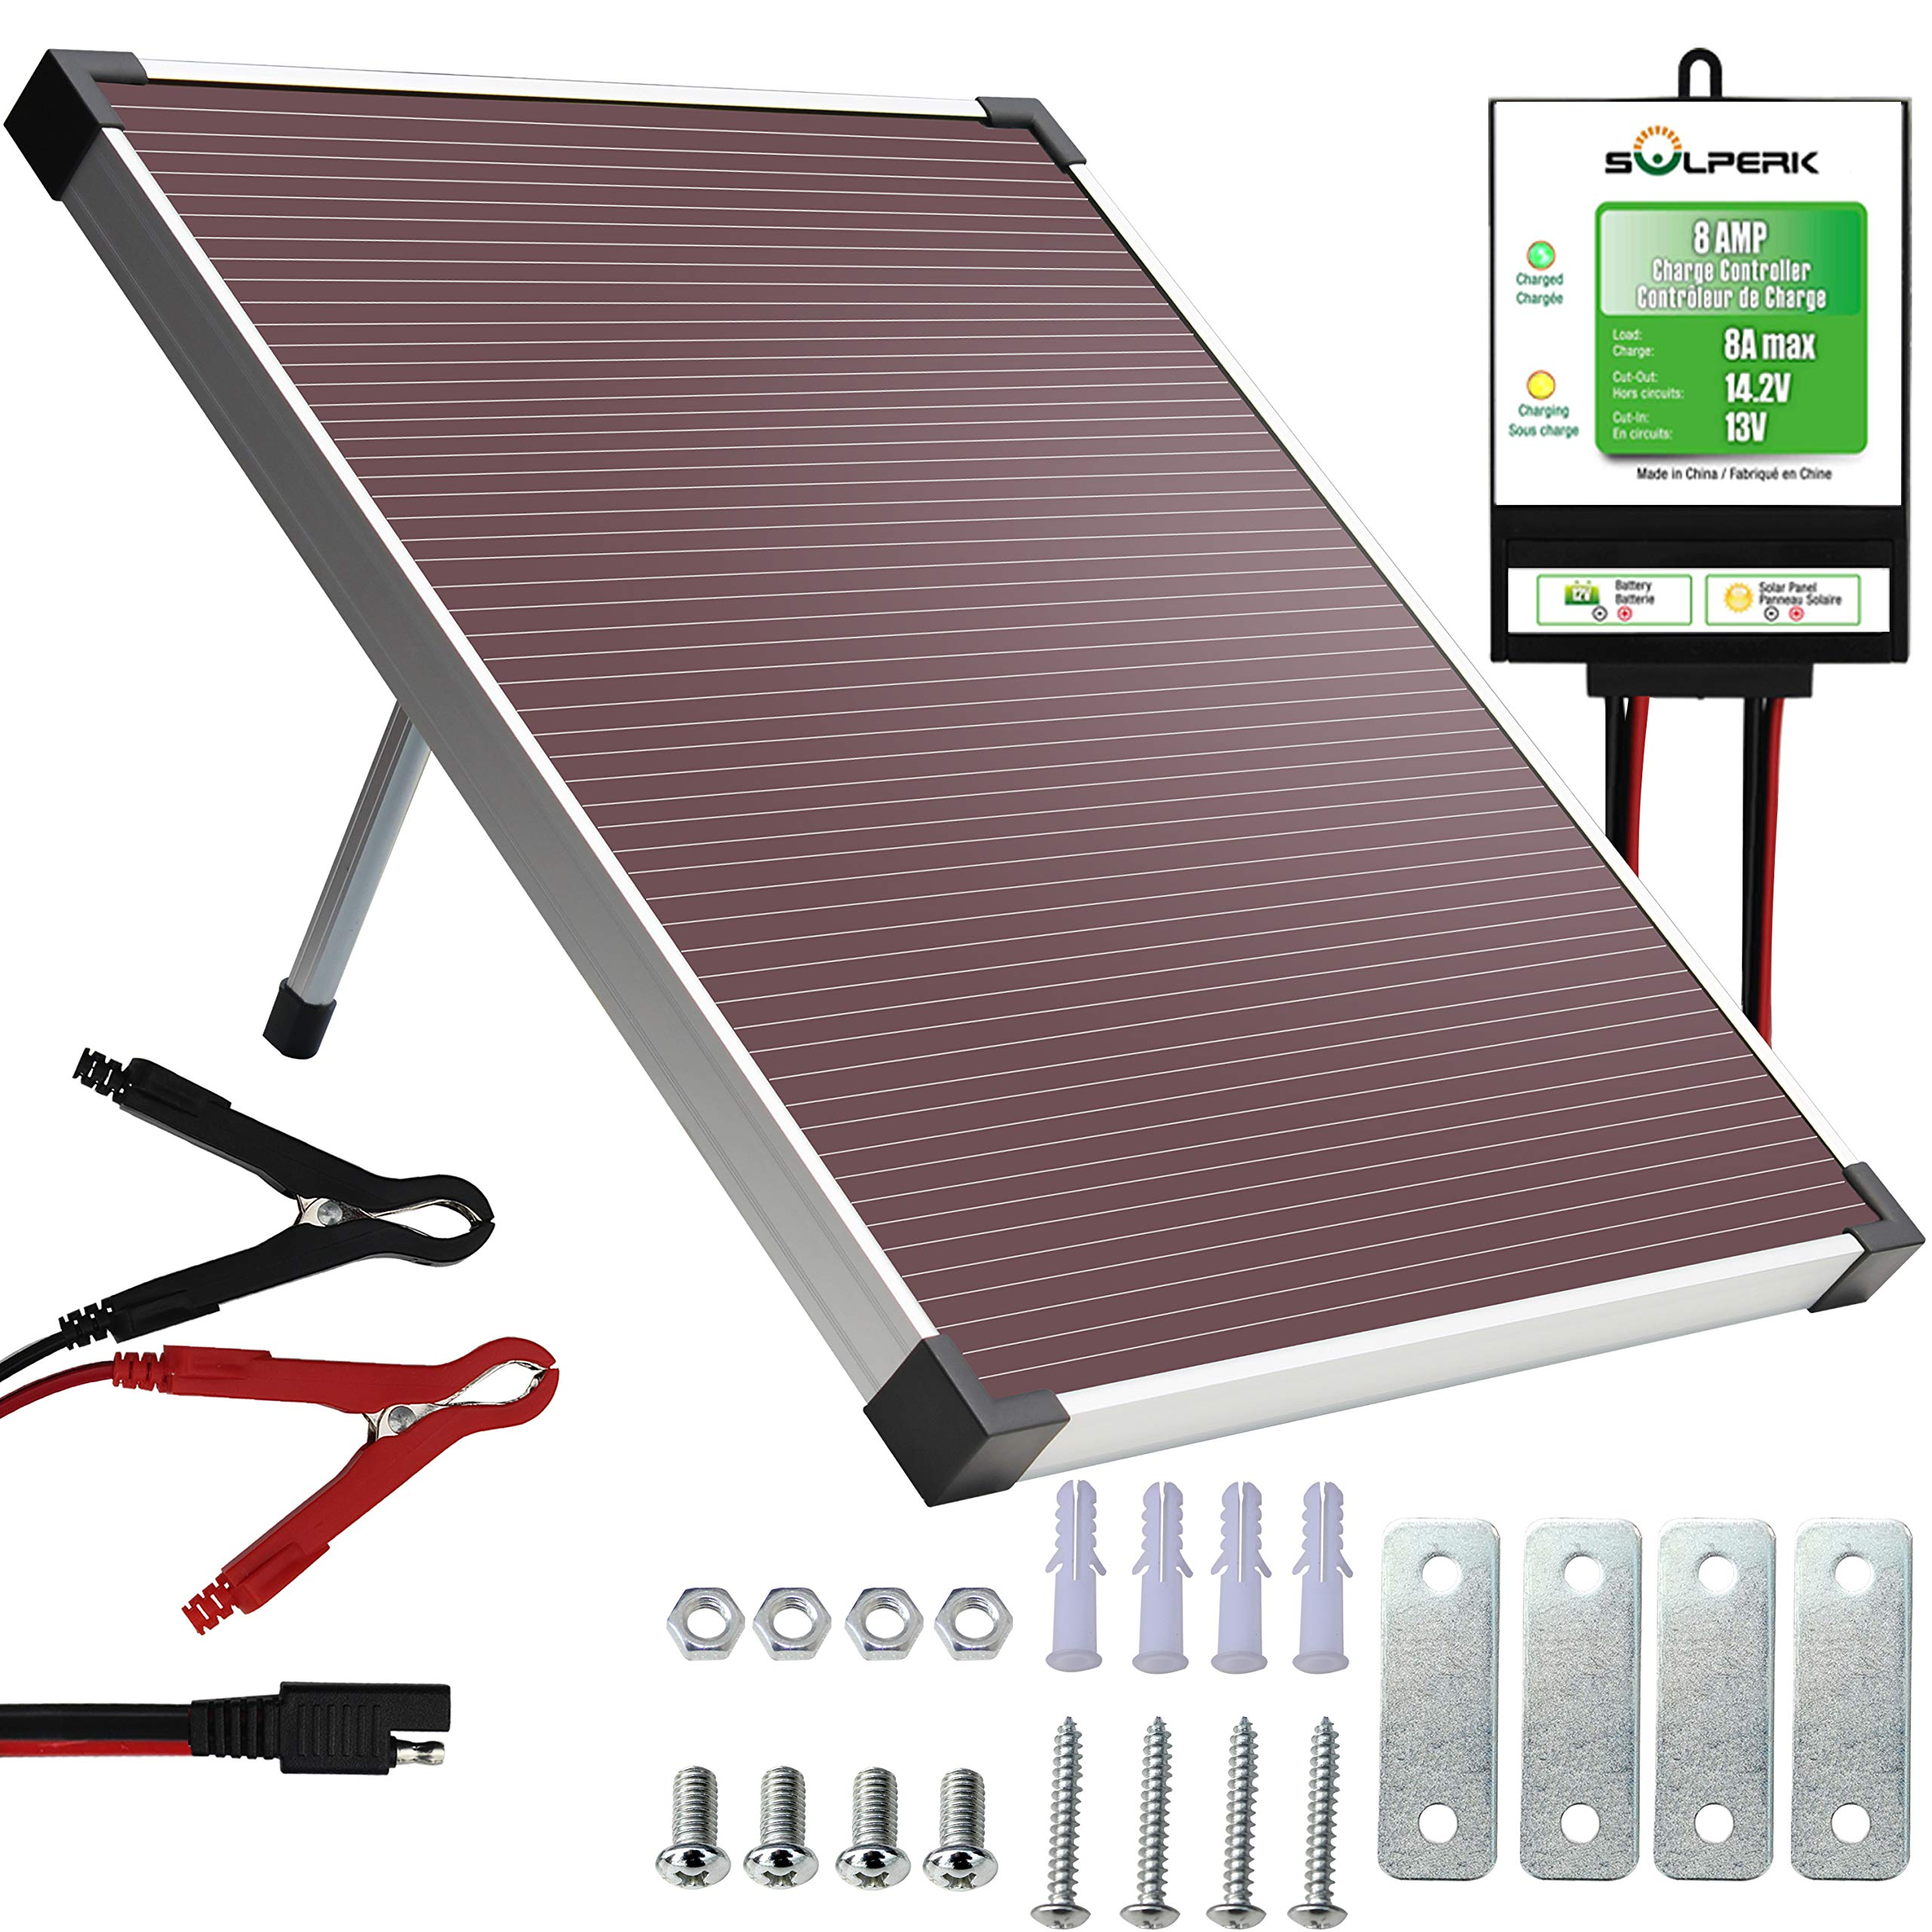 SOLPERK 12V Solar Panel,Solar trickle Charger,Solar Battery Charger and Maintainer,Suitable for Automotive, Motorcycle, Boat, ATV,Marine, RV, Trailer, Powersports, Snowmobile, etc. (20W Amorphous) by SOLPERK